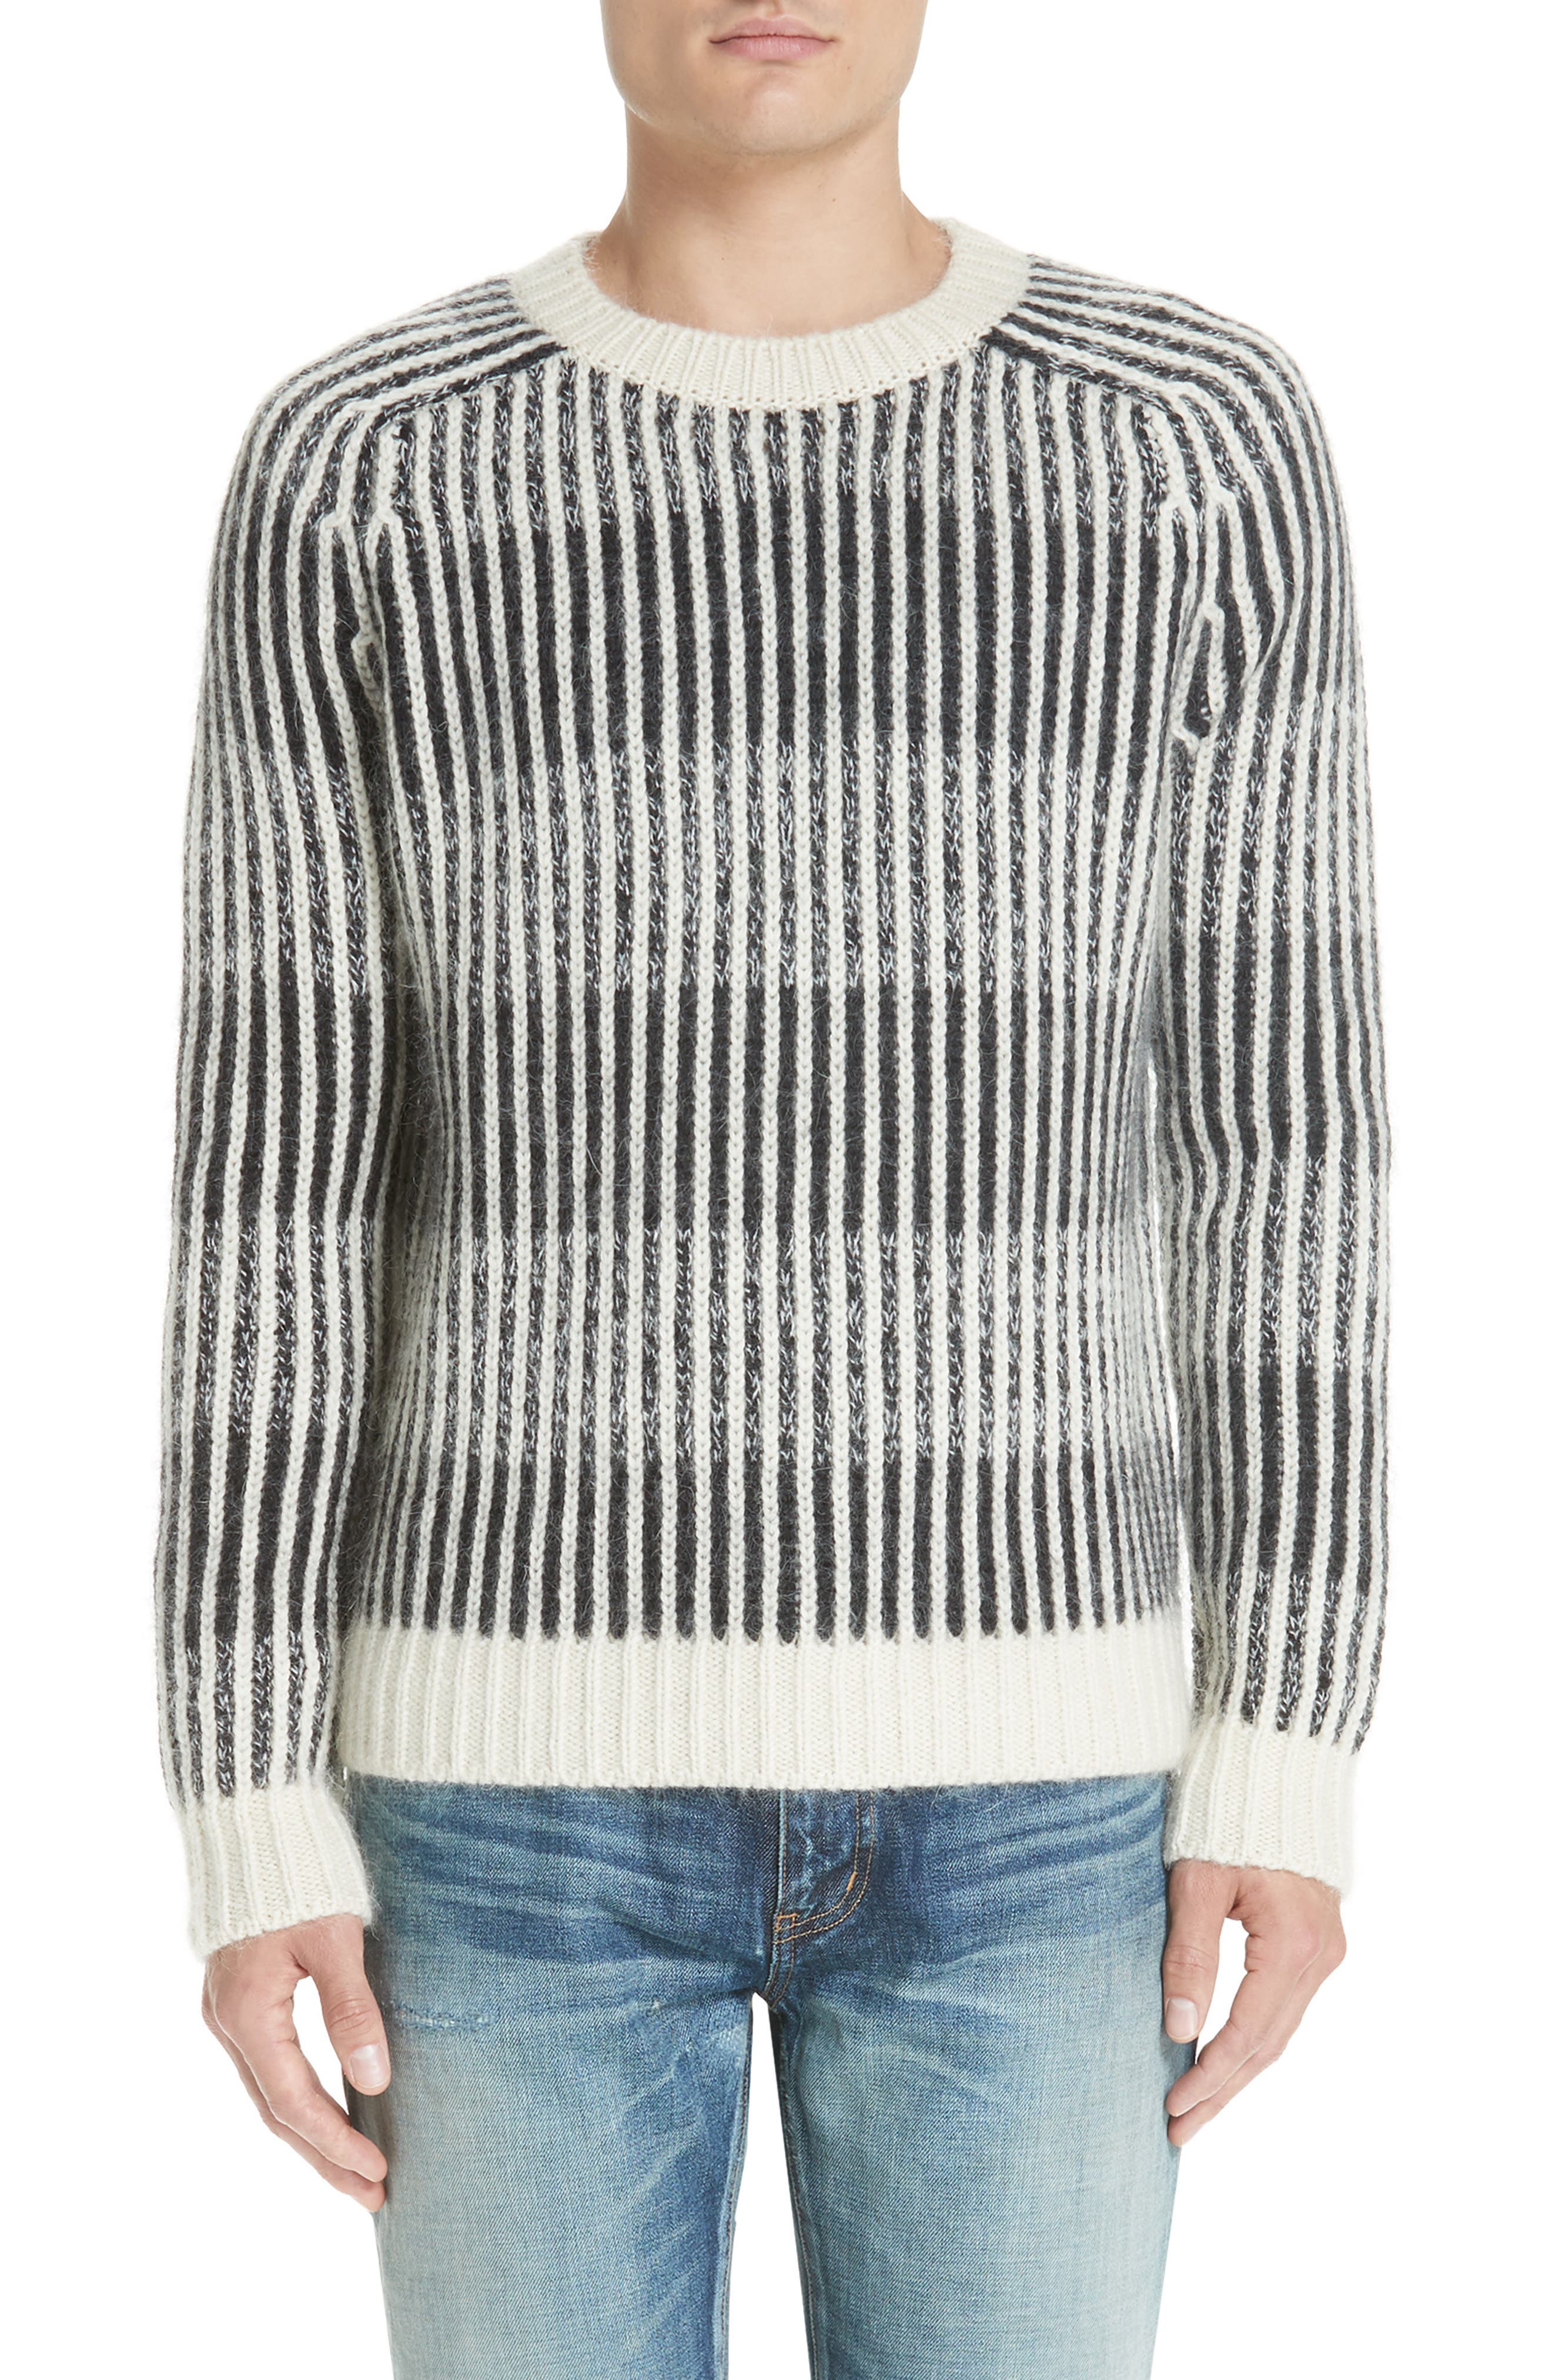 SAINT LAURENT,                             Contrast Rib Wool & Alpaca Blend Sweater,                             Main thumbnail 1, color,                             134